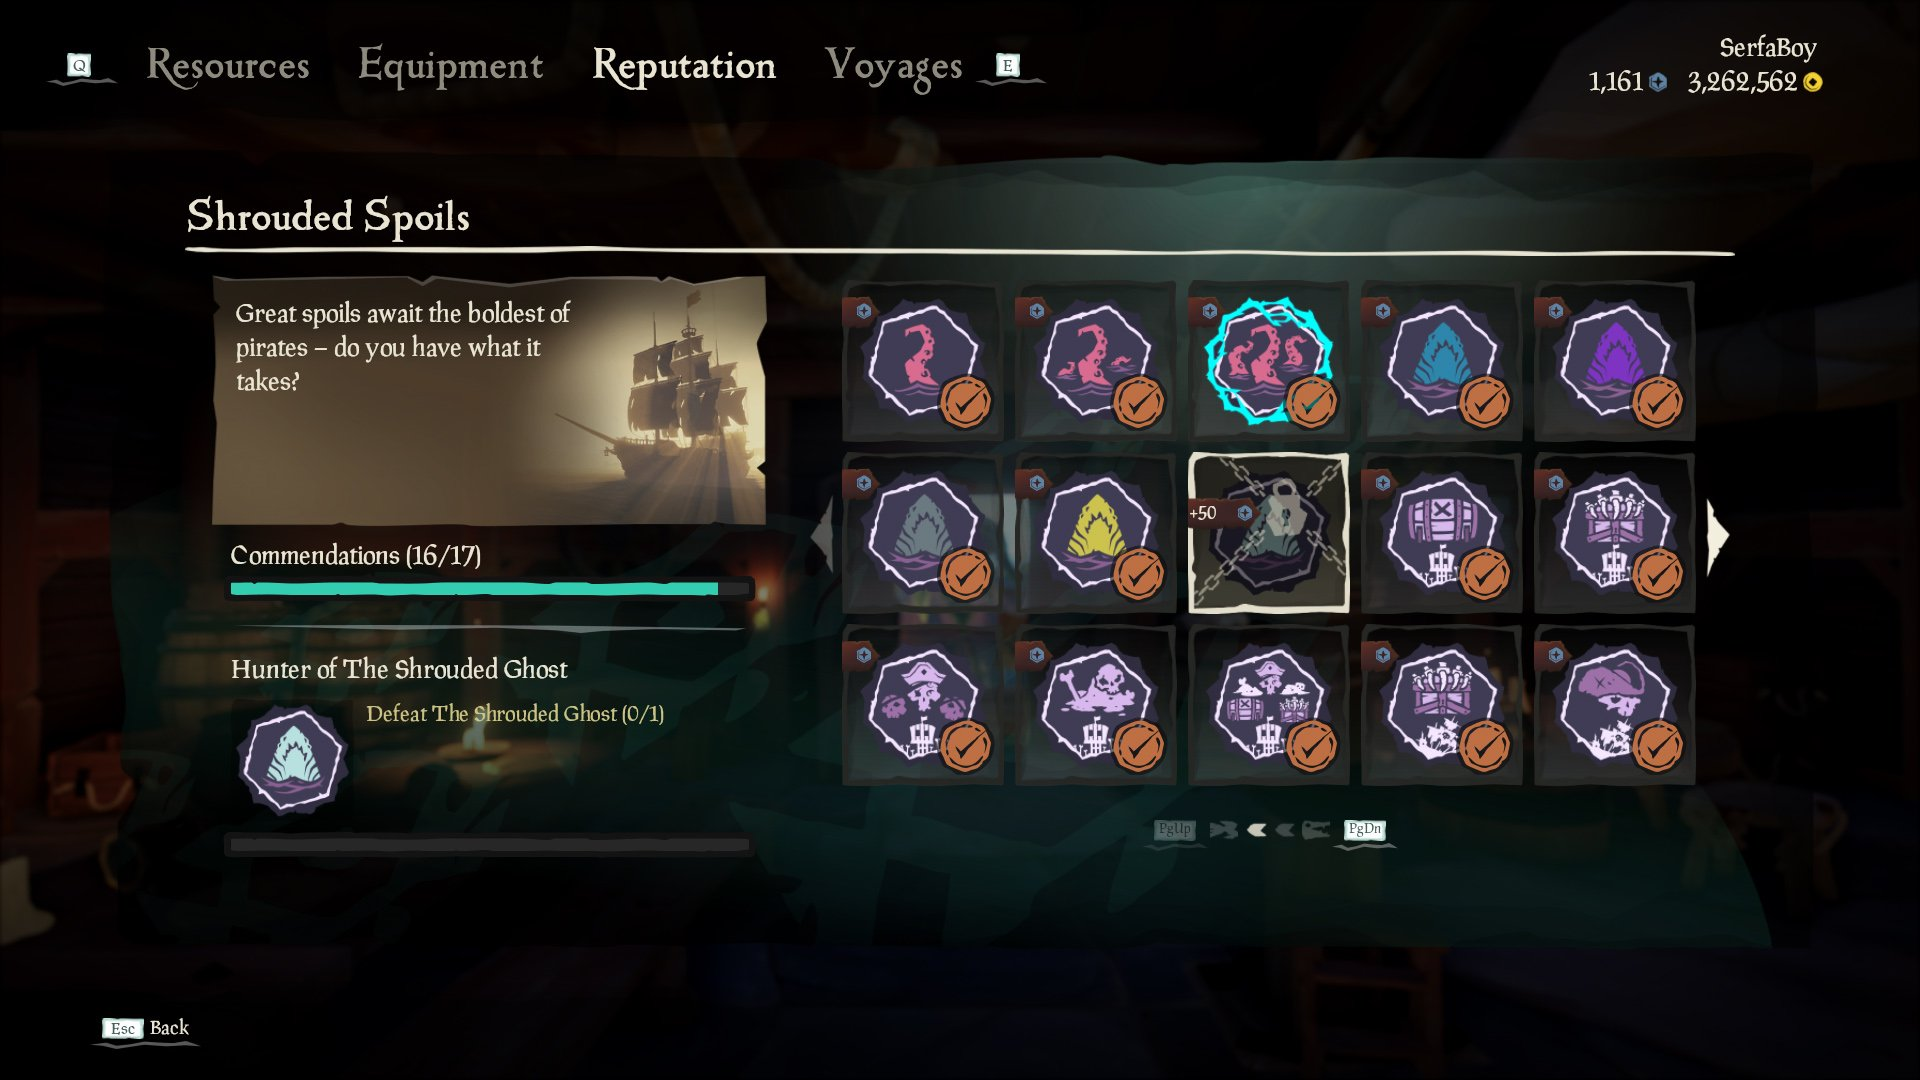 Sea of Thieves bilge rat adventures doubloons